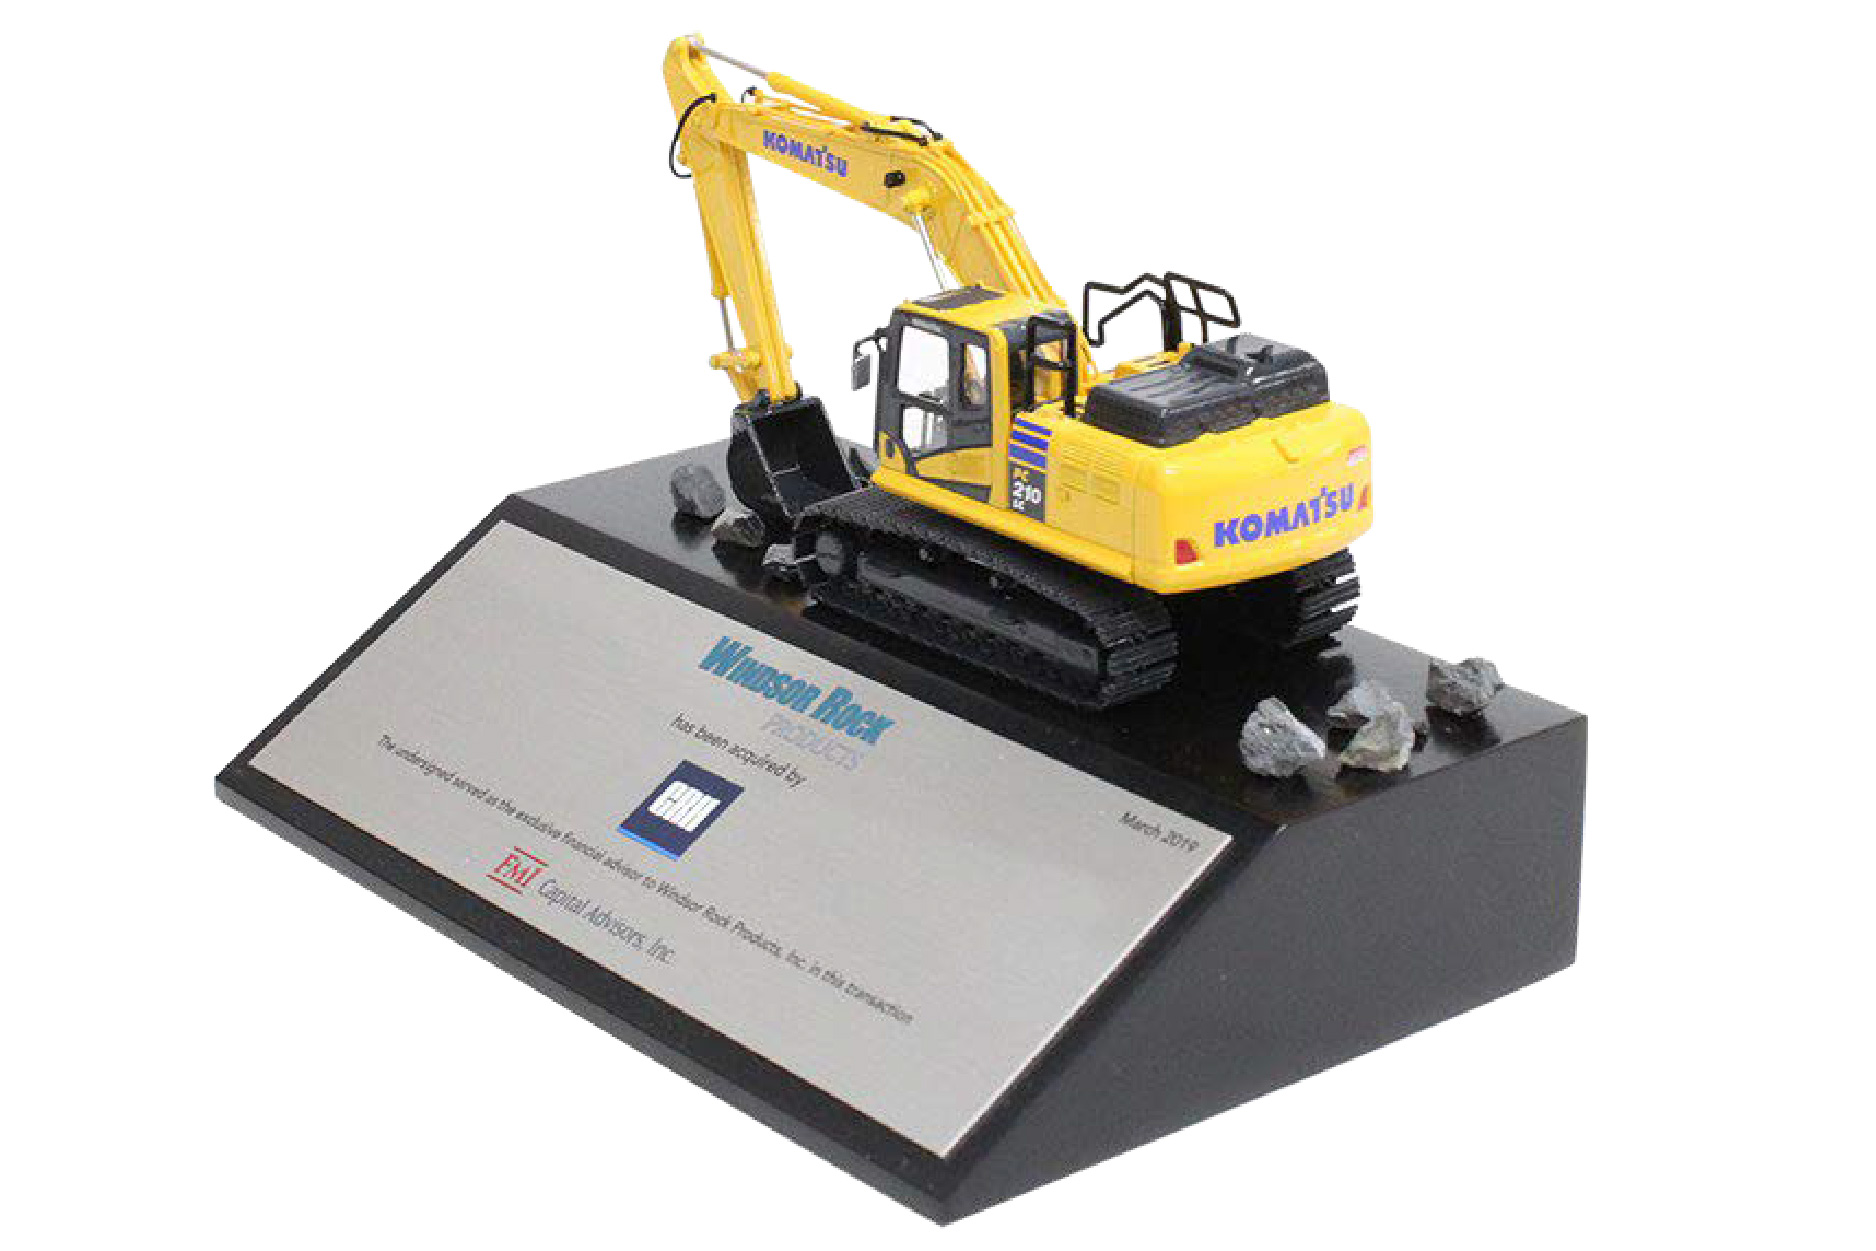 A scale model yellow digger vehicle mounted on a tapered black base with a silver financial tombstone plaque.